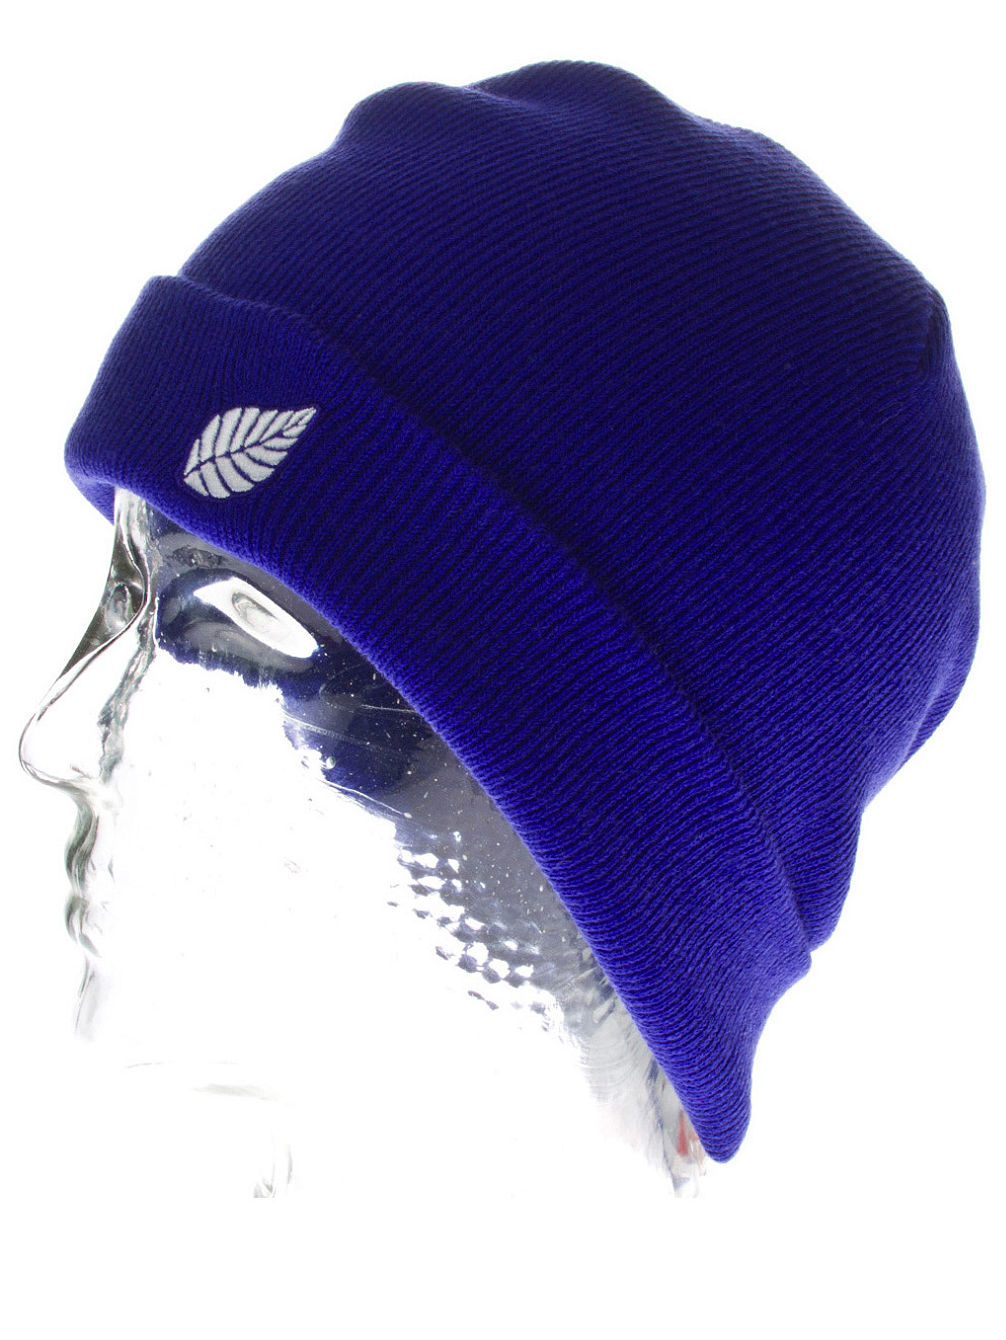 The Reservoir Beanie